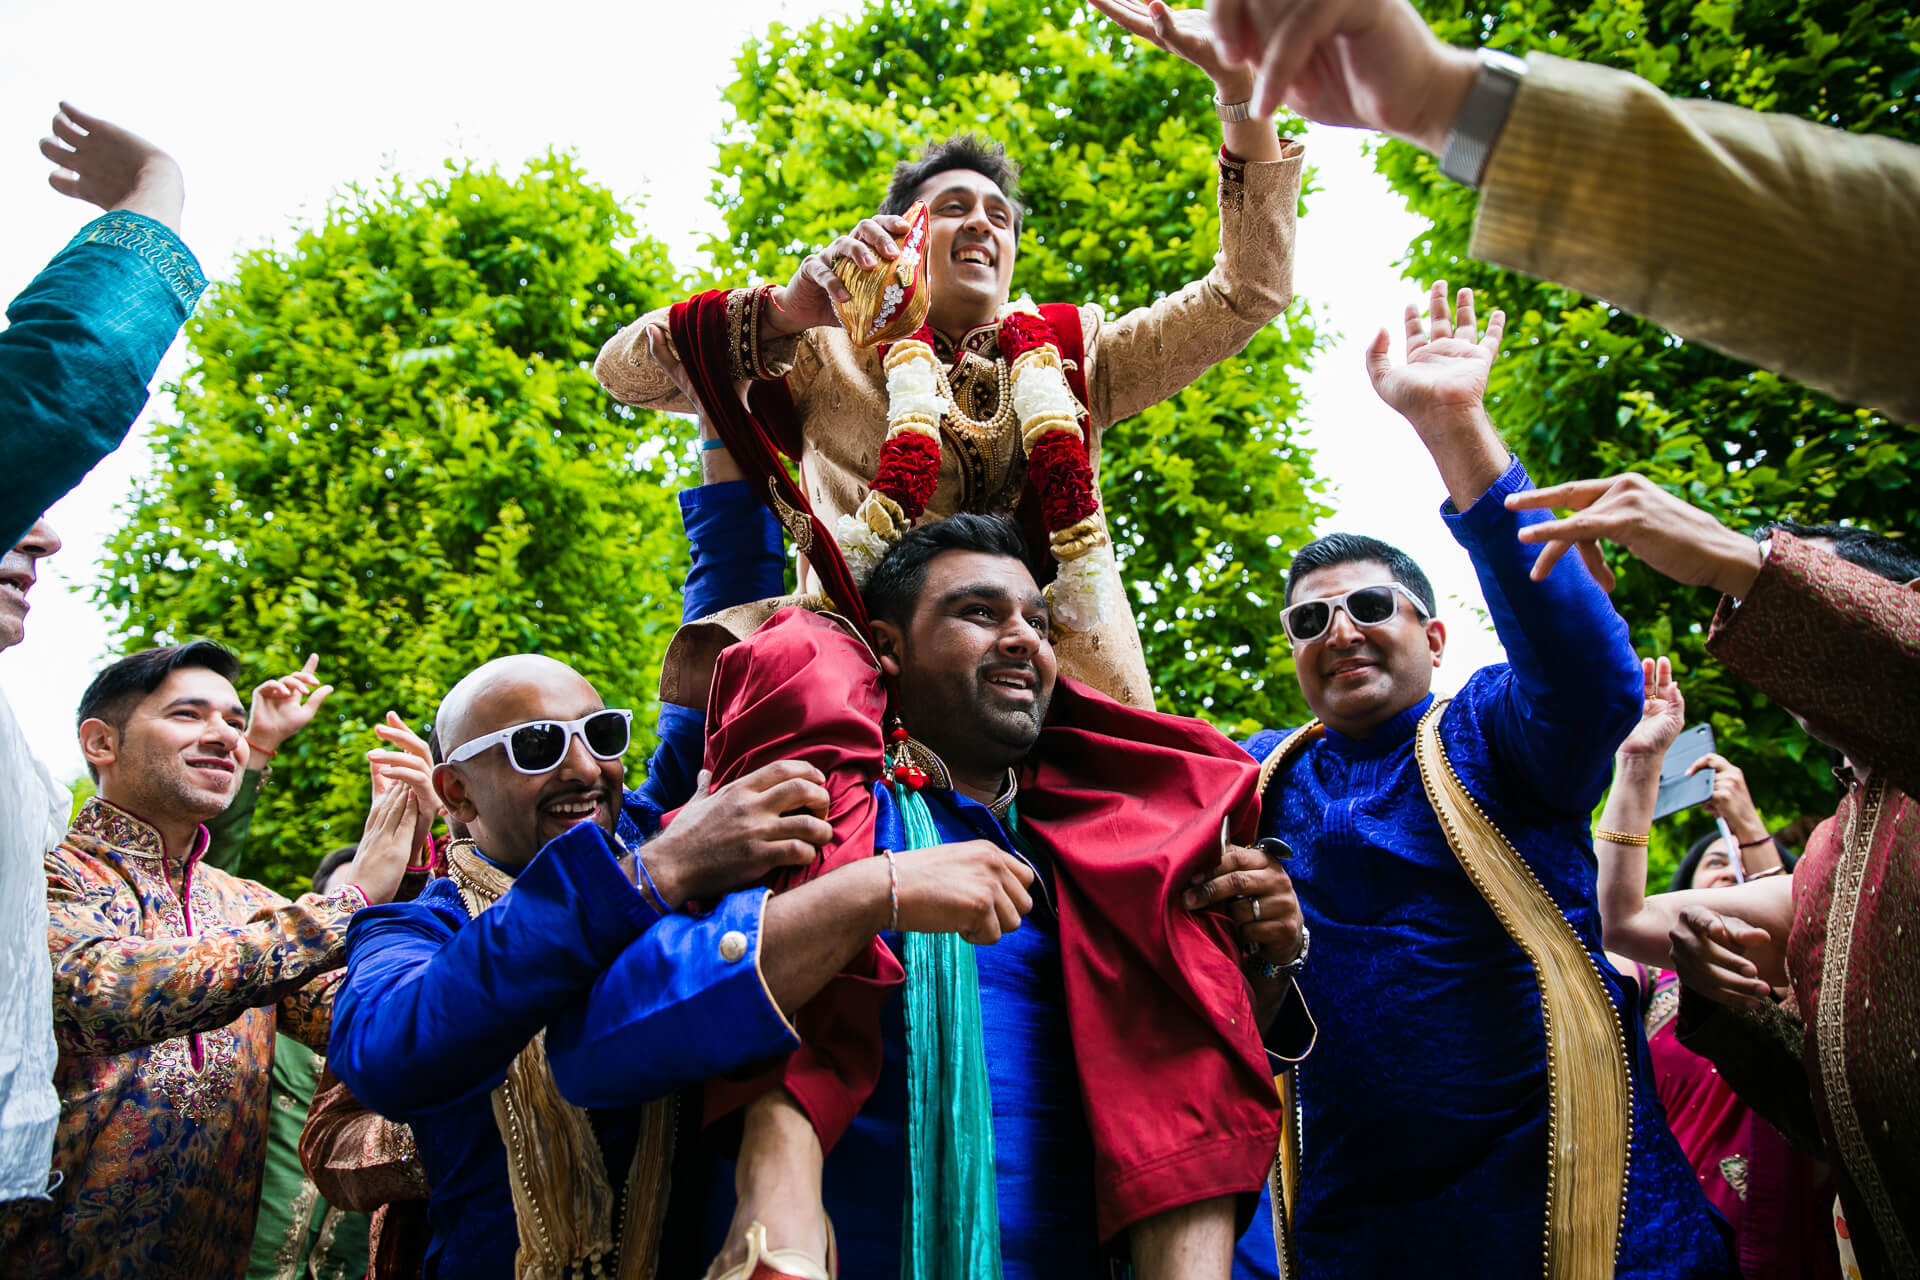 Groom's arrival to Hindu wedding